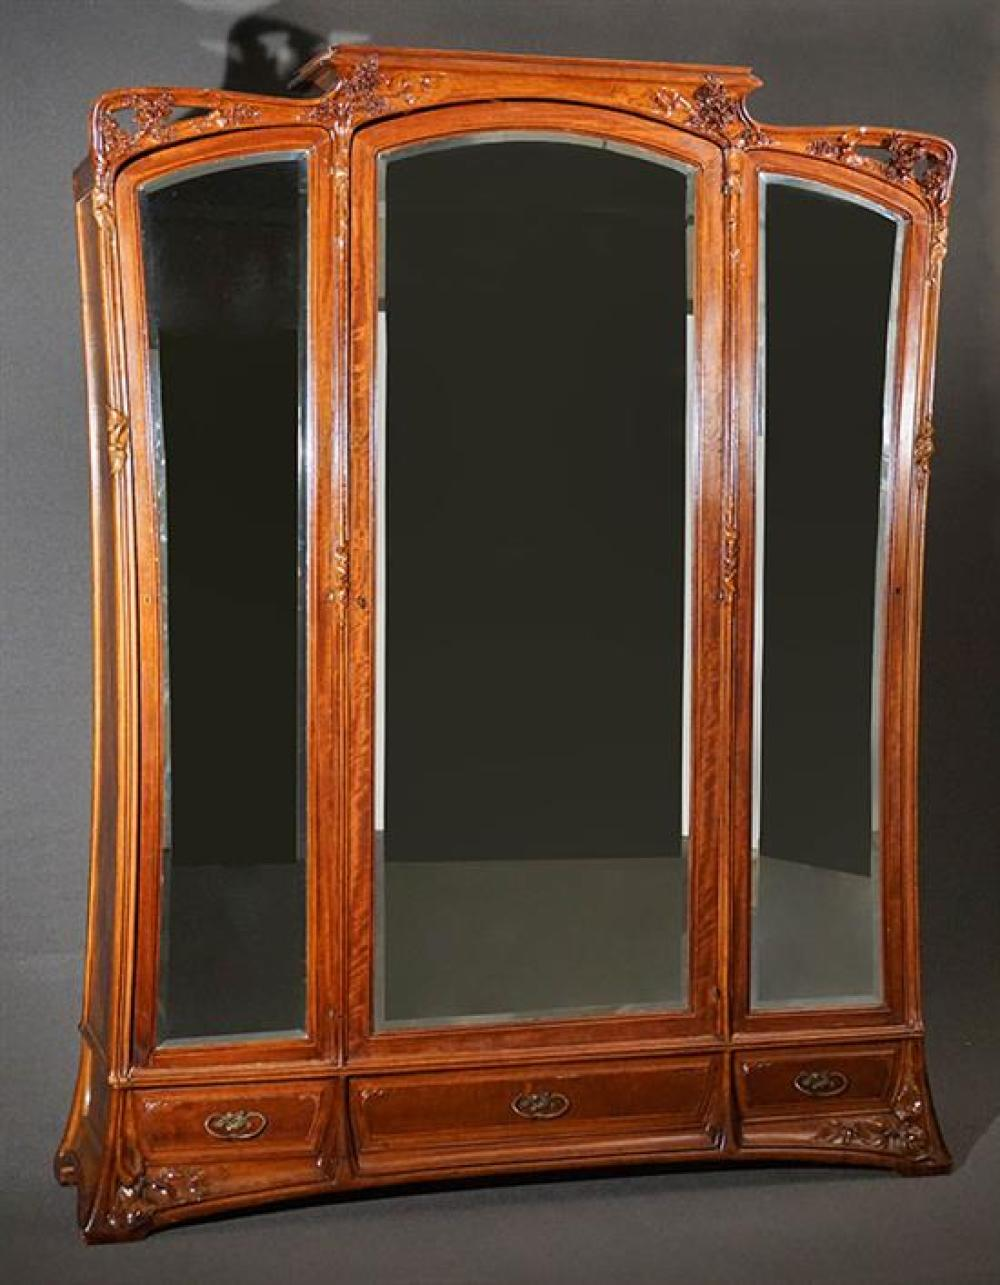 Louis Majorelle Carved and Figured Mahogany 'Les Lilas' Armoire Circa 1905